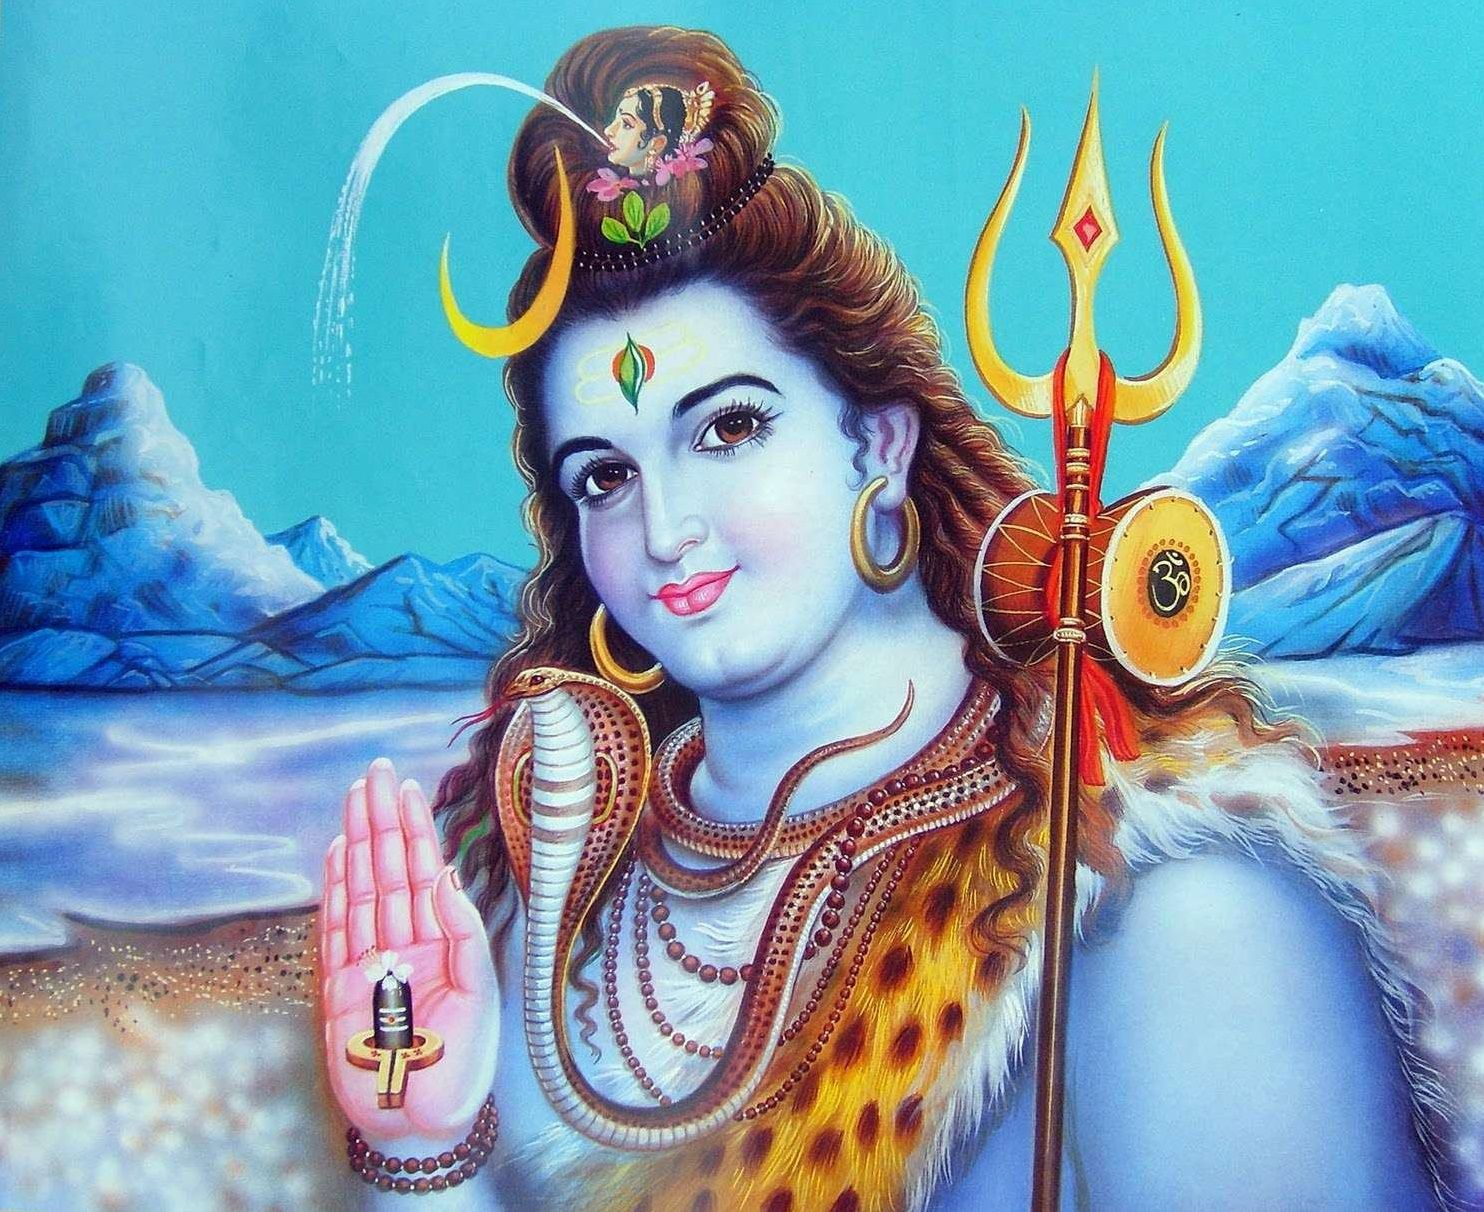 Shiva Wallpaper In Hd: Best 3,487+ {God HD Images} Hindu God Wallpapers For